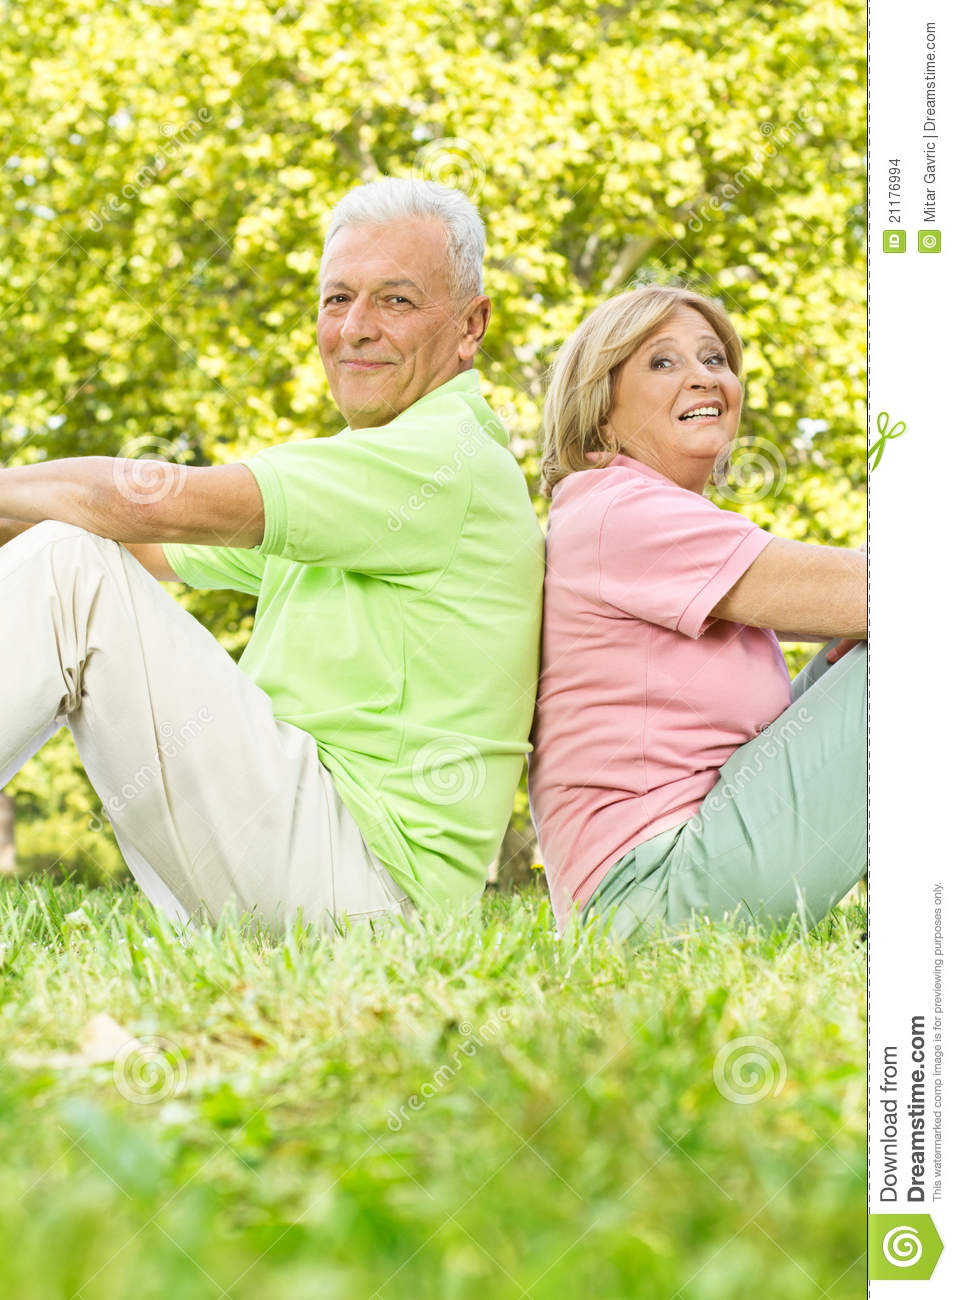 Happy old people relaxed